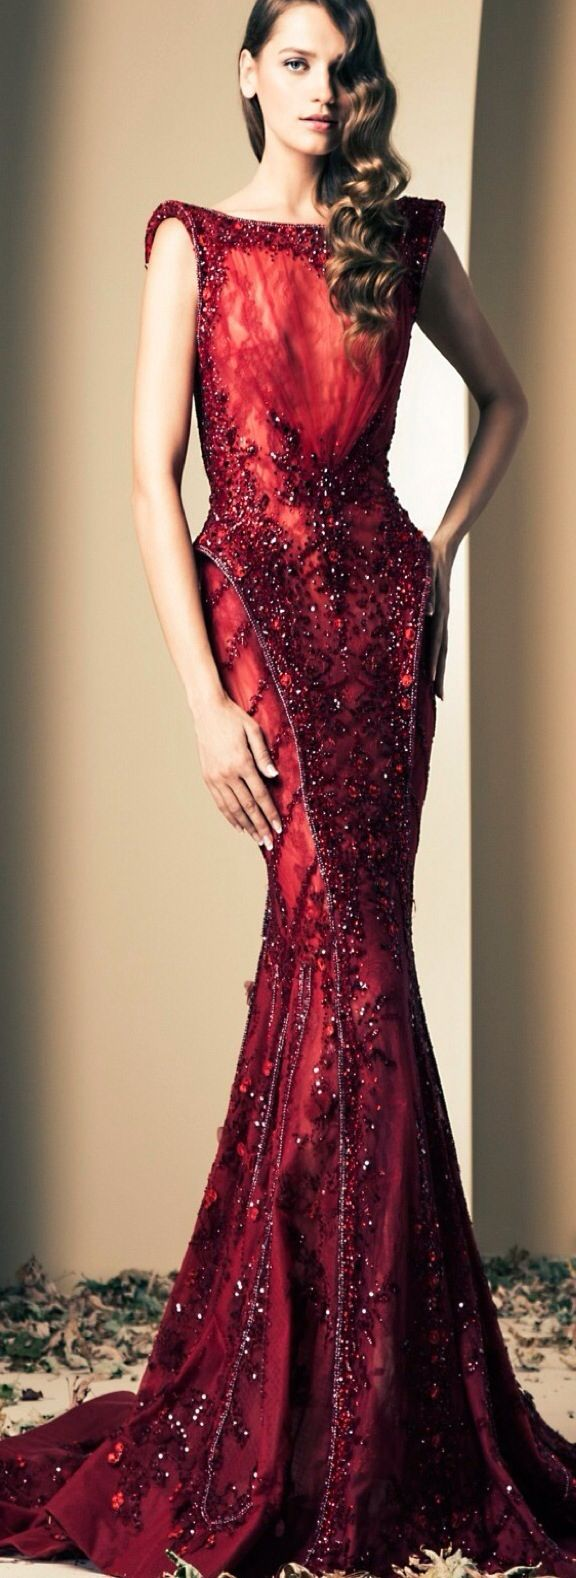 Ziad Nakad Couture Collection - love the neckline and shoulders, and the flanges at the hips.